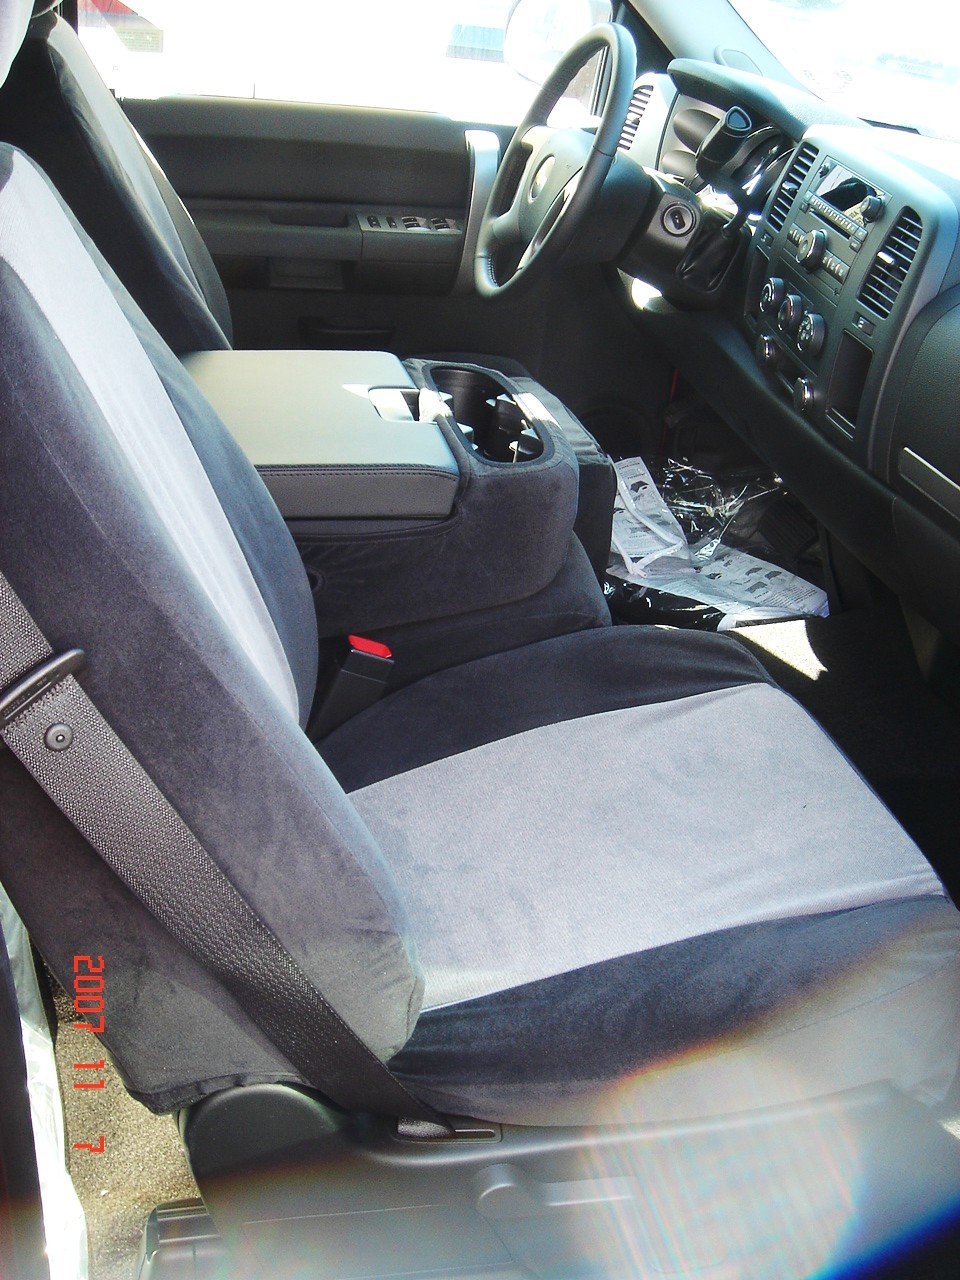 Durafit Seat Covers C1123-X1-H7-2007-2013 Chevy Silverado, Tahoe and GMC Sierra Front Bucket Seat Covers in Black Endura with Gray Airtex Inserts.